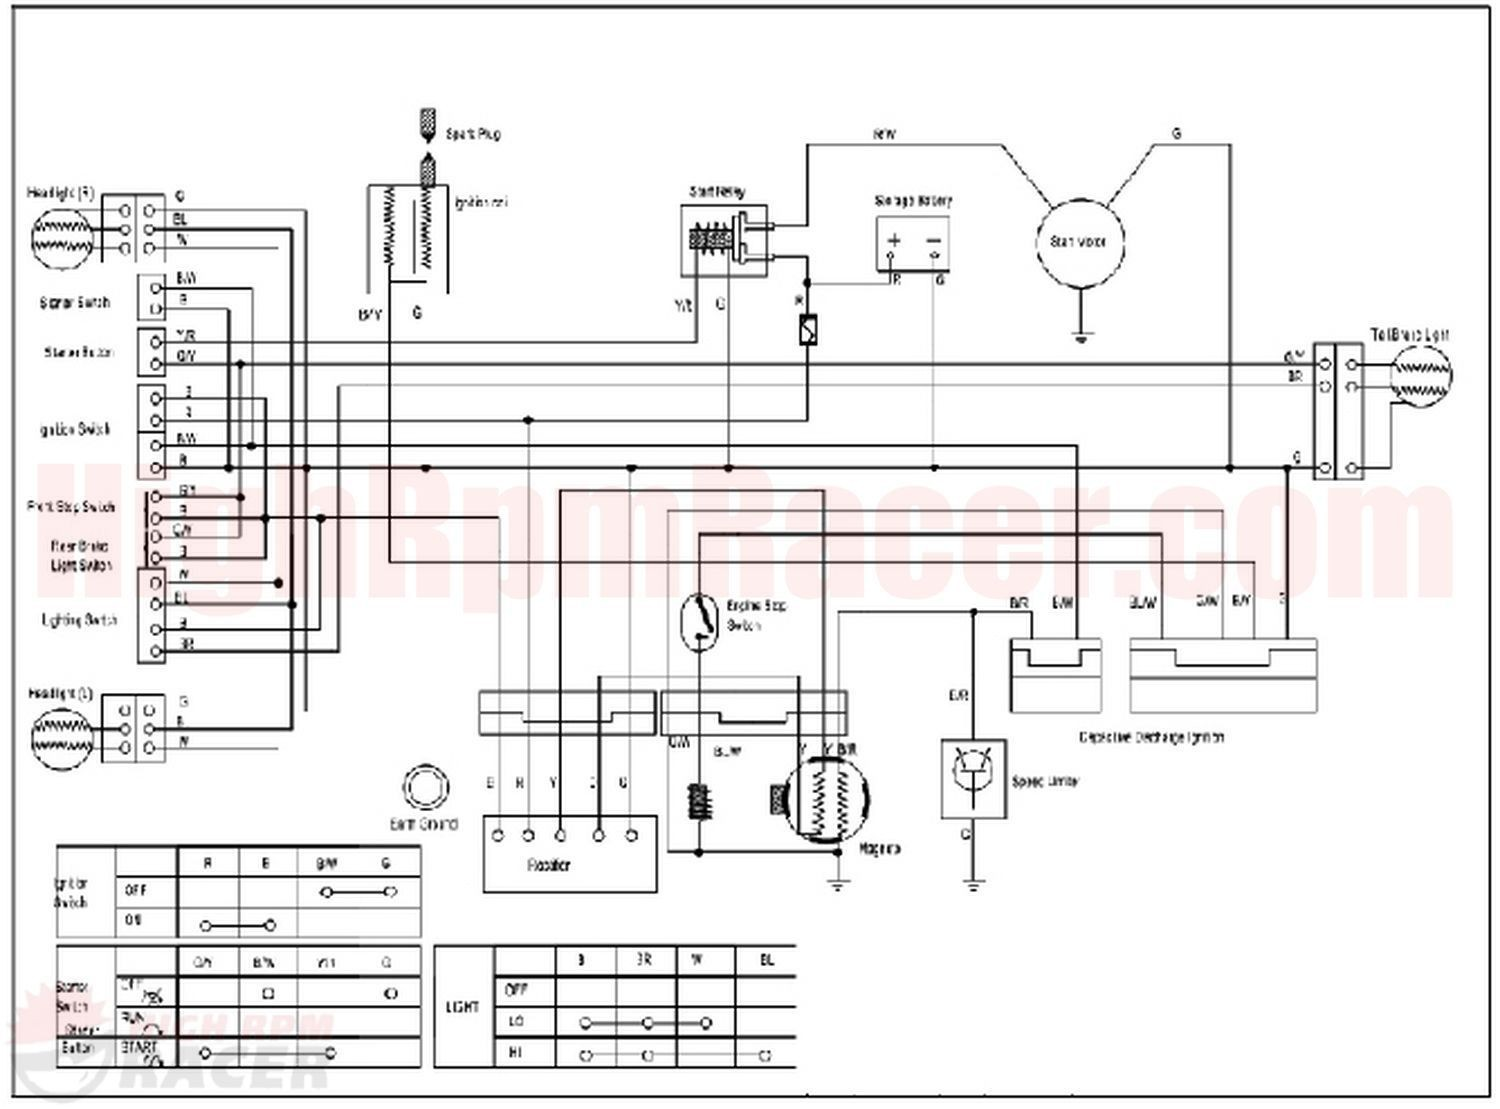 Kazuma Wiring Diagram -Drag Race Car Wiring Diagram | Begeboy Wiring Diagram  SourceBegeboy Wiring Diagram Source